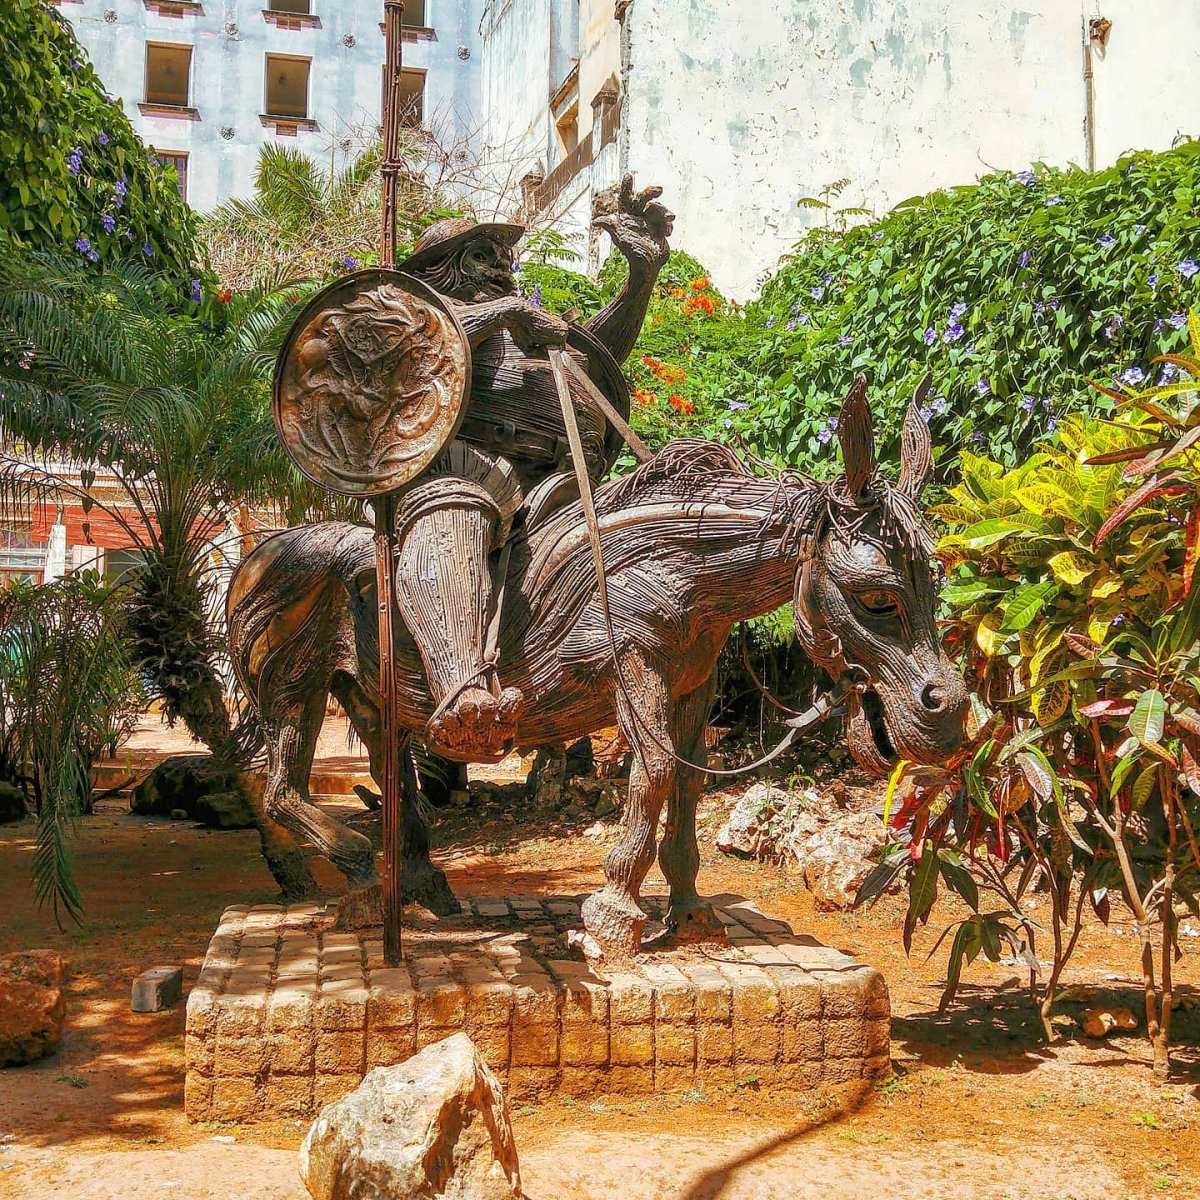 While I was strolling in Obispo... ‍♂️🌎🤙 La Habana Vieja, Cuba 2015#cuba #tbt #sculpture #travelpics #travelgram #cuba #travelstoke #habana #travelphoto #traveladdict #travelling #garden  #travels #travelblog #traveler #travel #traveller #travellife #travelphotography #travelholic #traveling #travelawesome #travelingram